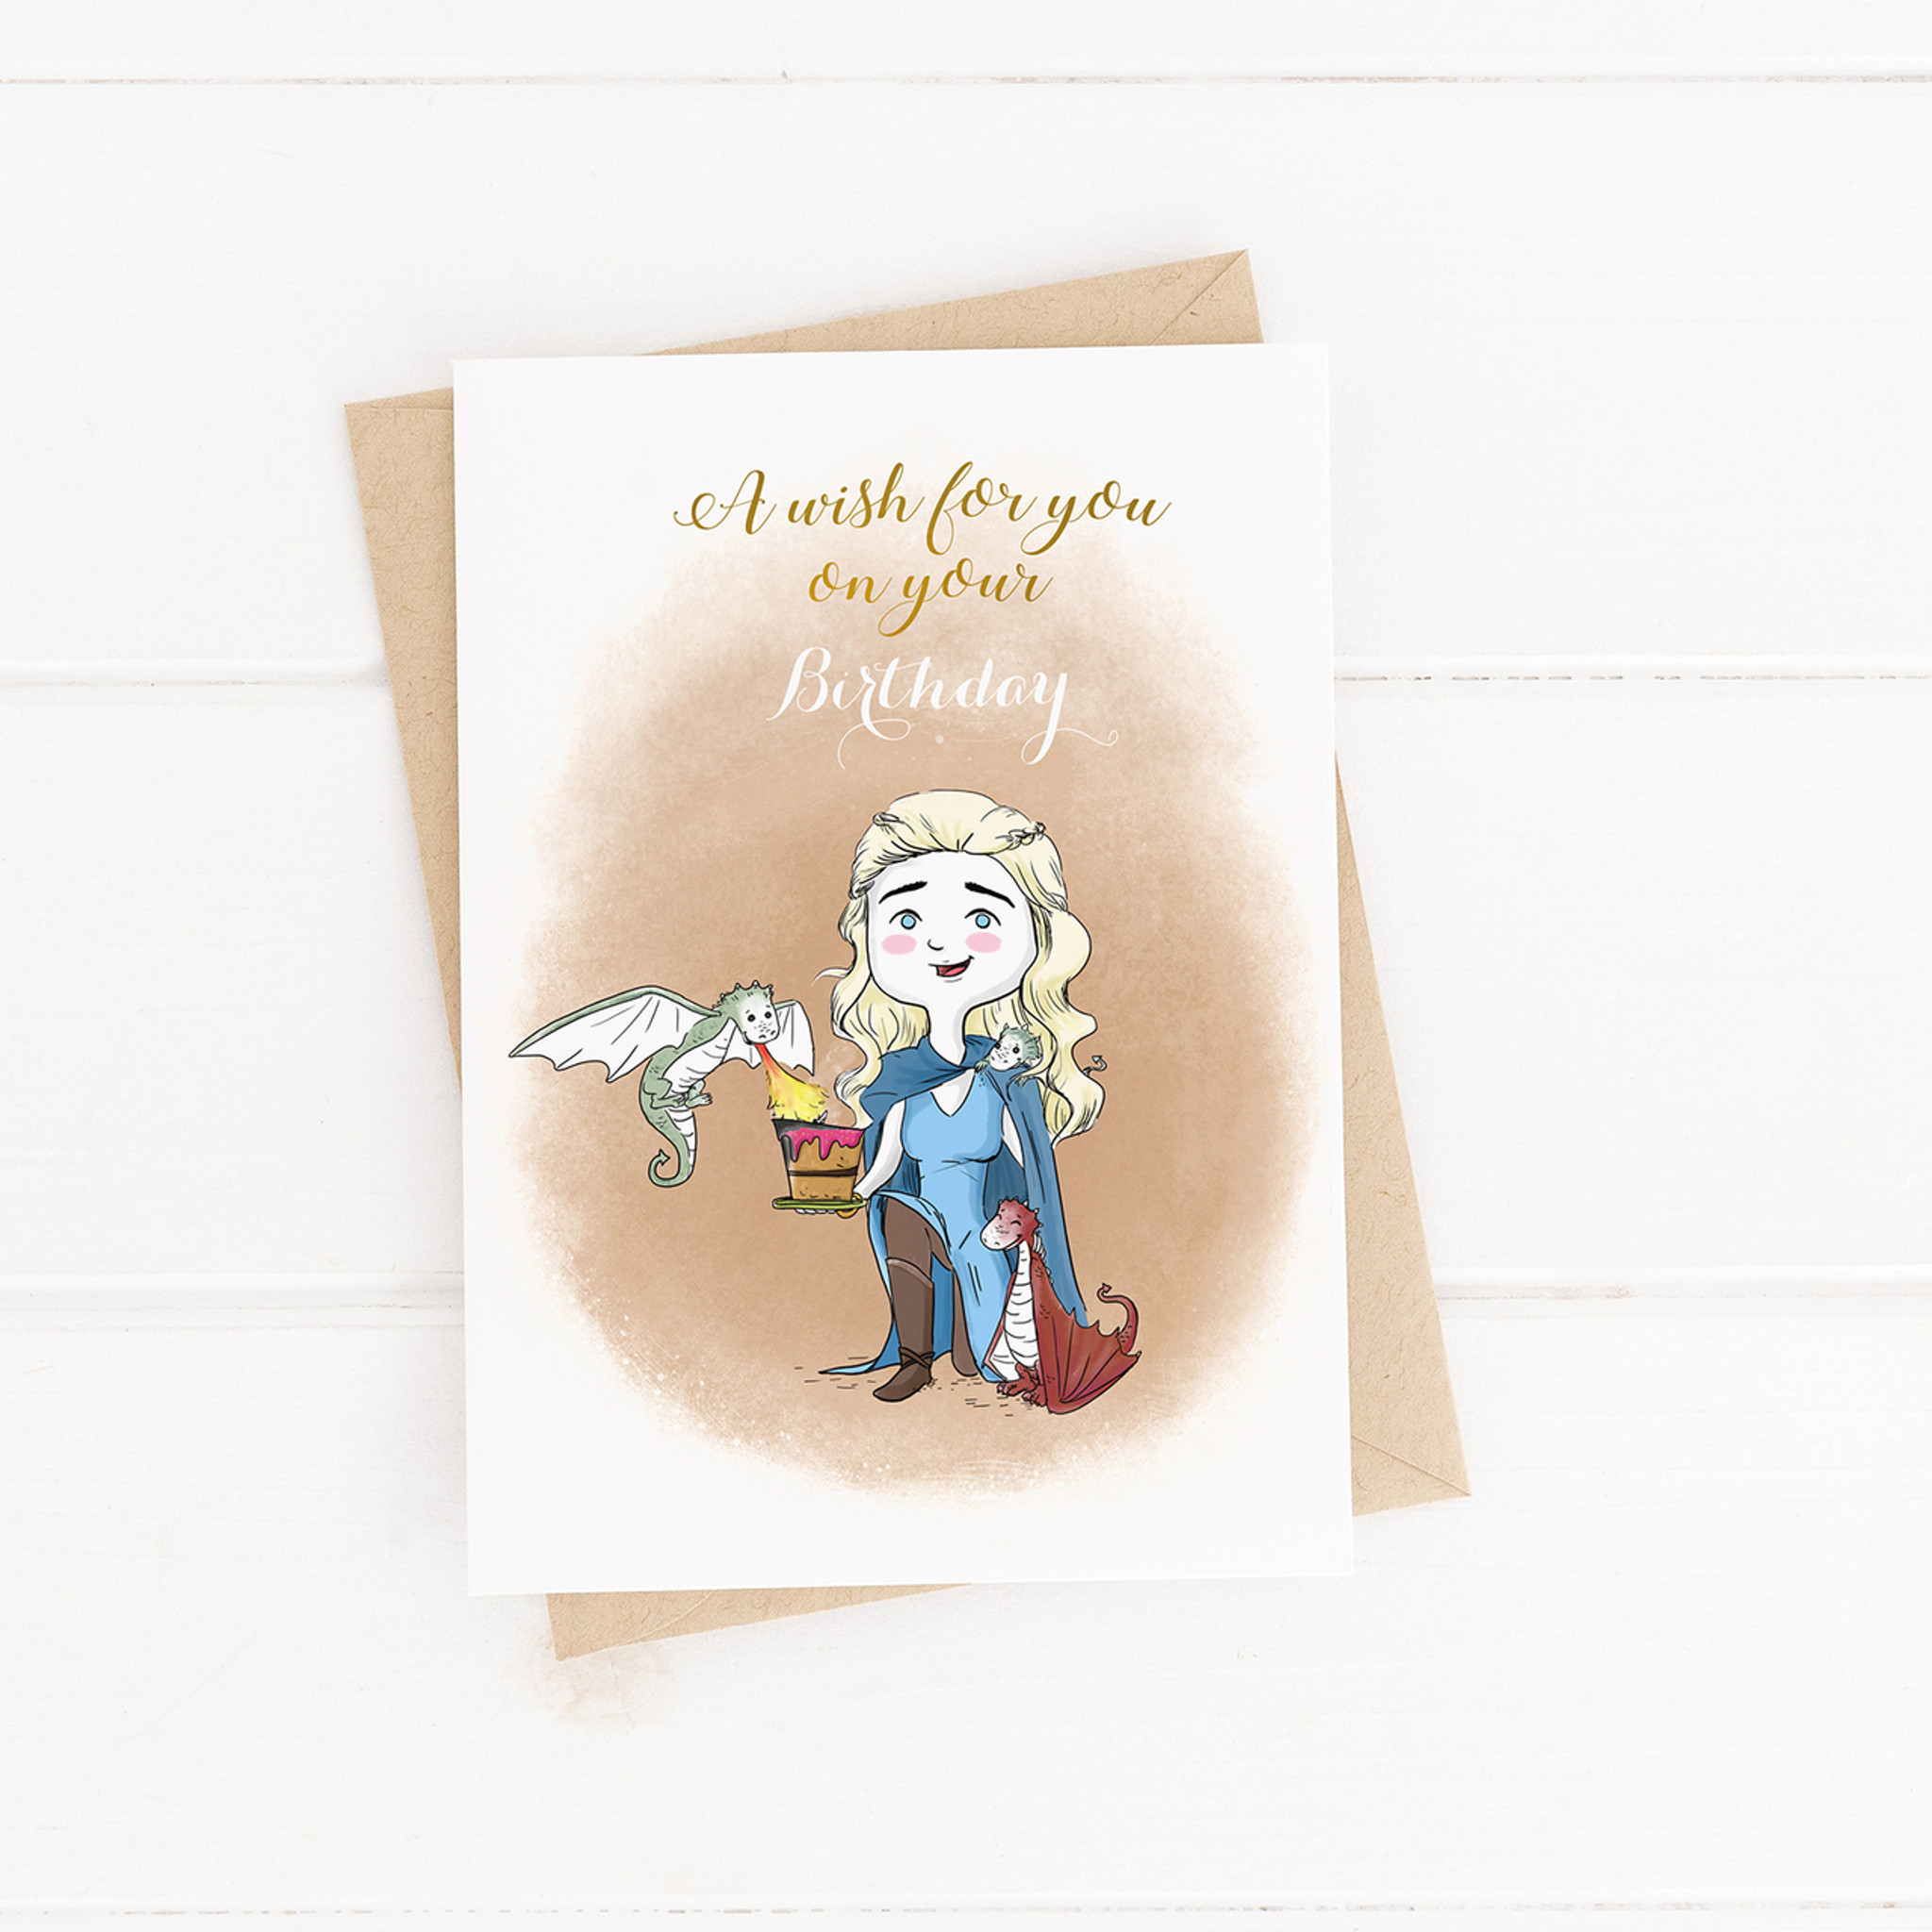 picture about Funny Printable Cards identified as Humorous Satisfied birthday, Printable Card, Match of Thrones, Khaleesi, Adorable Birthday Card, Birthday, Daenerys Targaryen